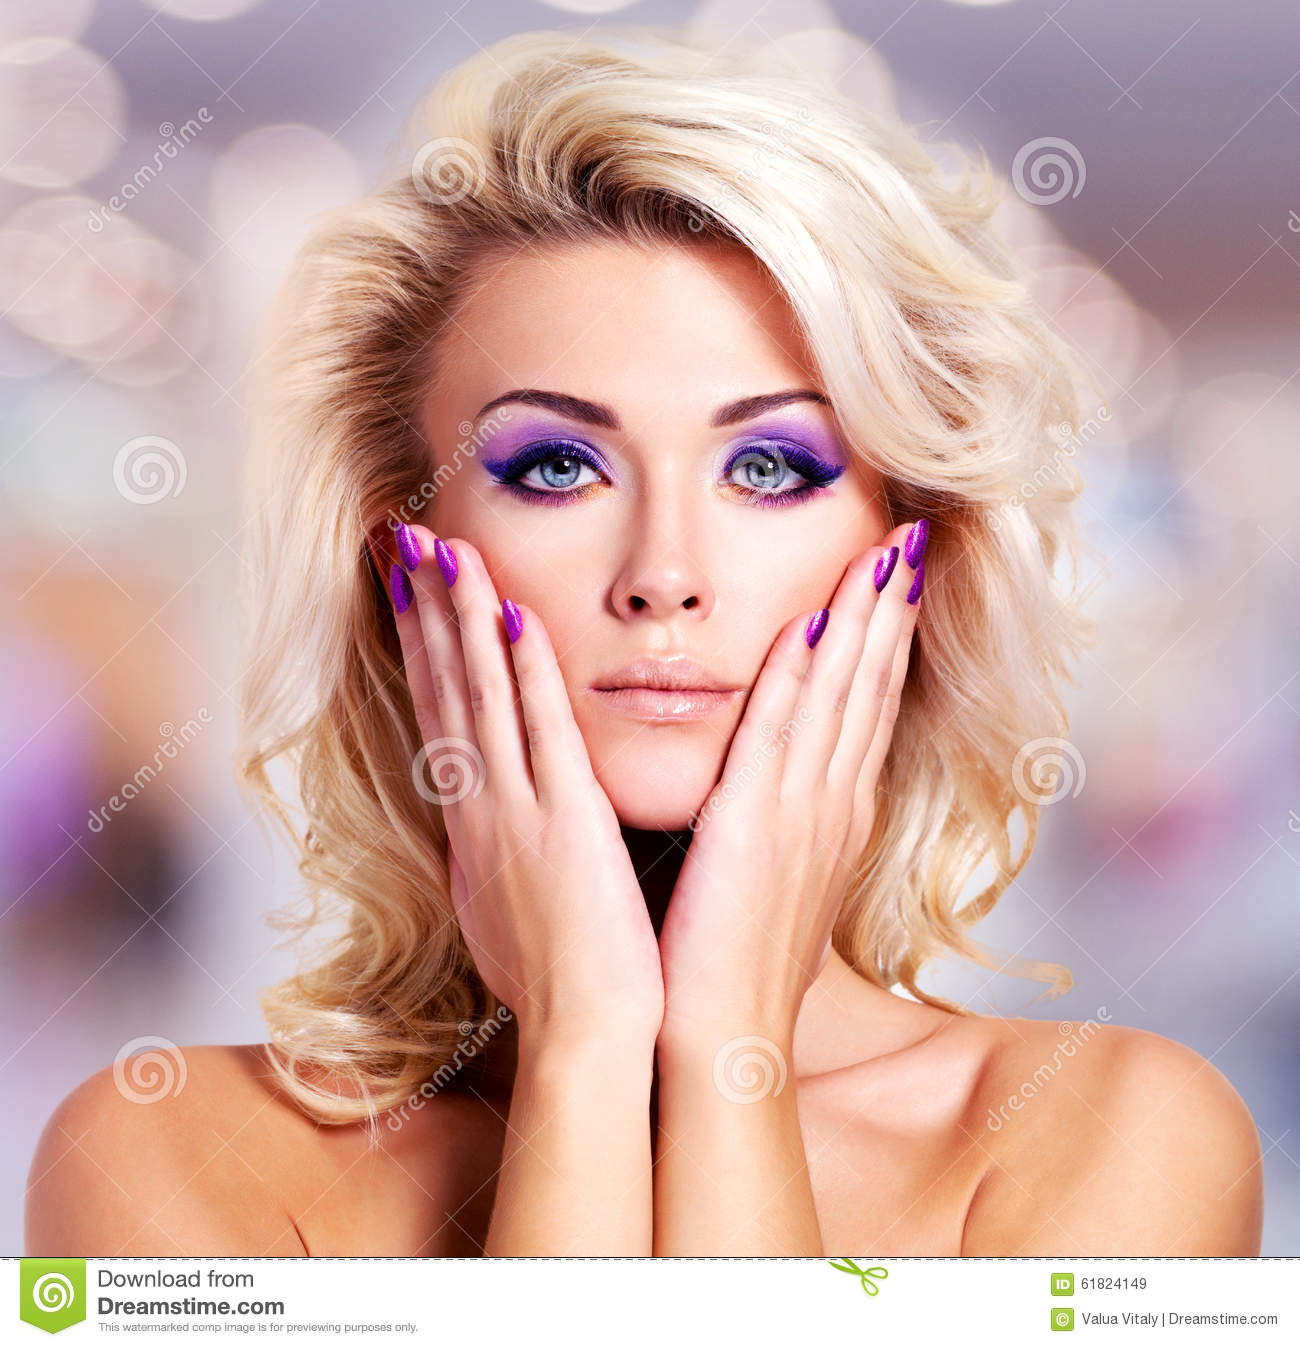 Beautiful Woman With Purple Nails And Glamour Makeup Stock Photo - Image 61824149